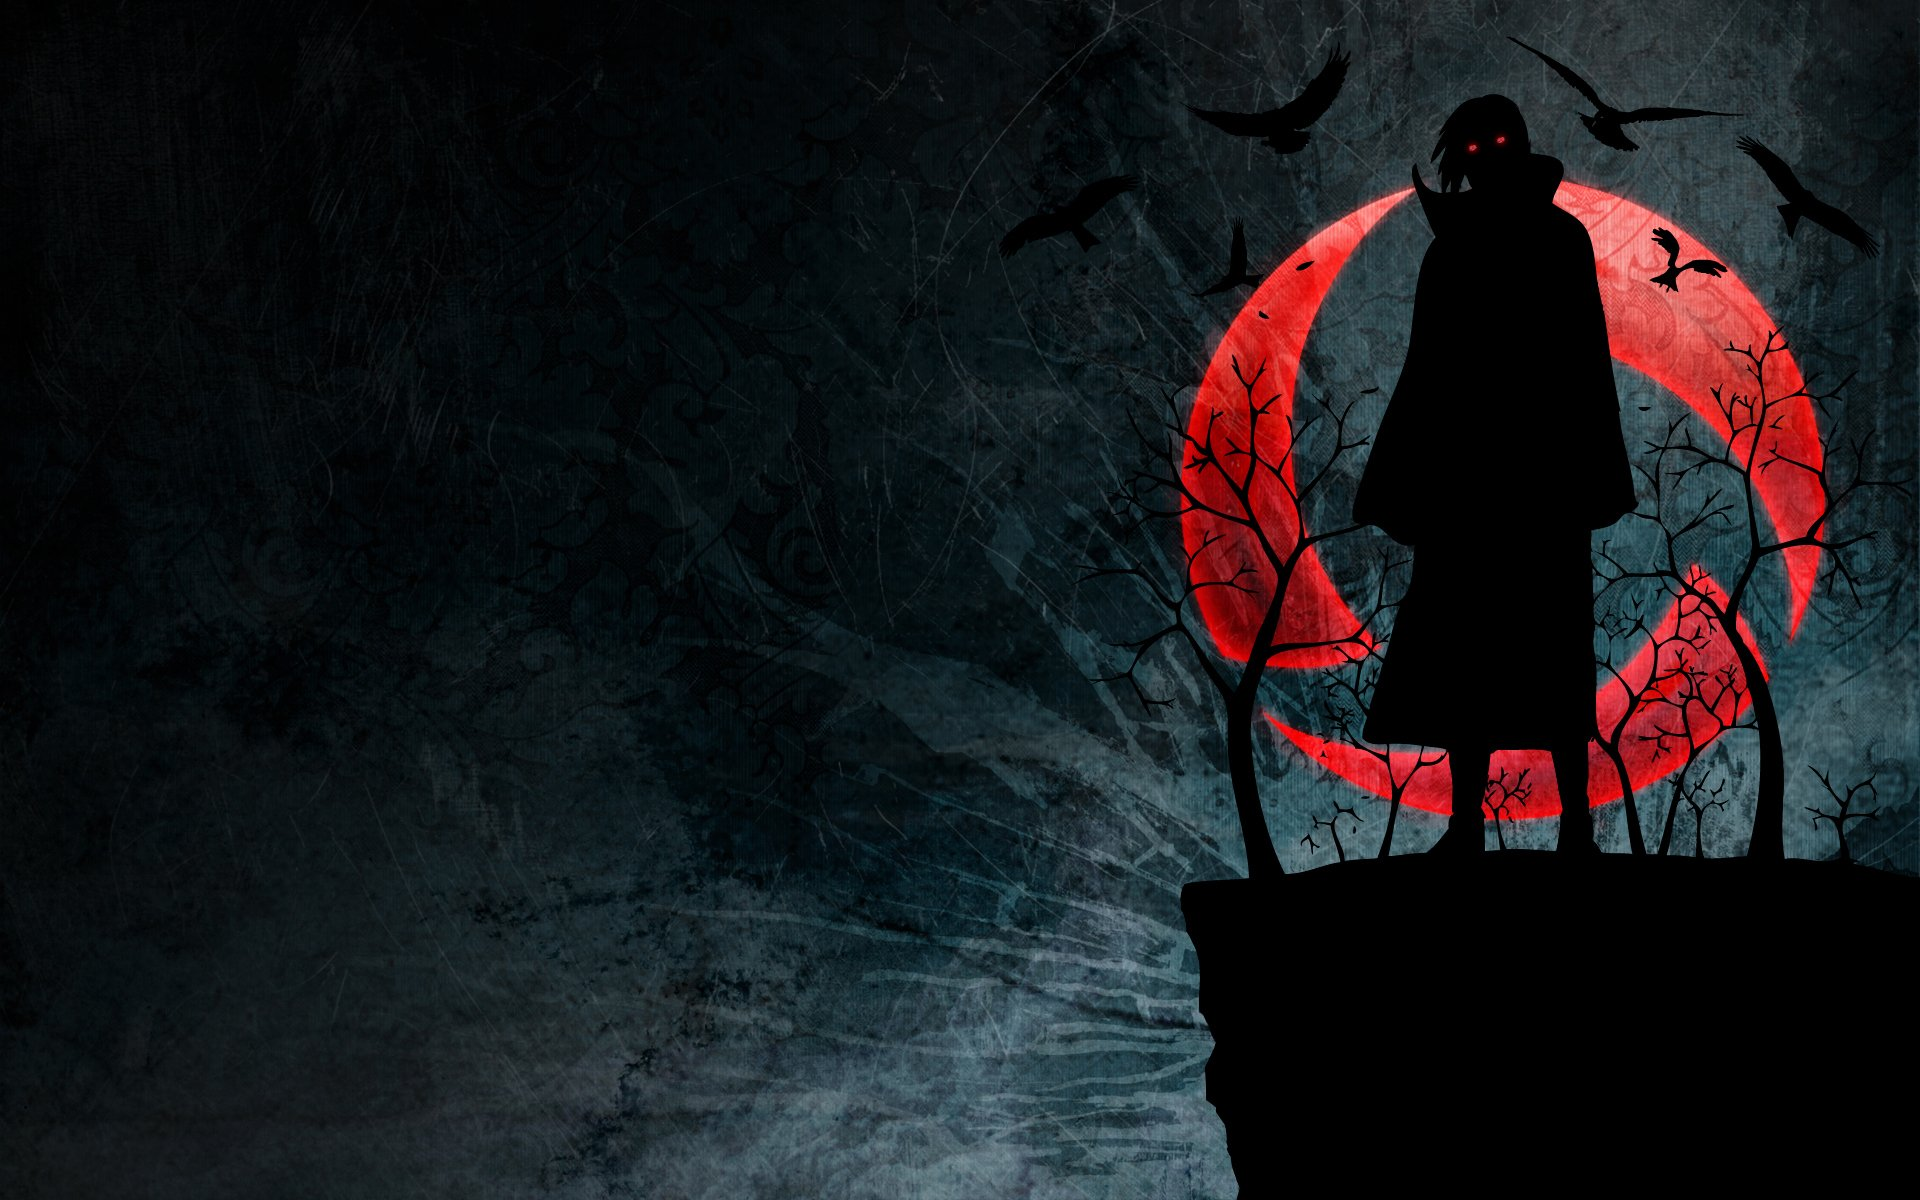 233 Itachi Uchiha HD Wallpapers   Background Images   Wallpaper Abyss HD Wallpaper   Background Image ID 144565